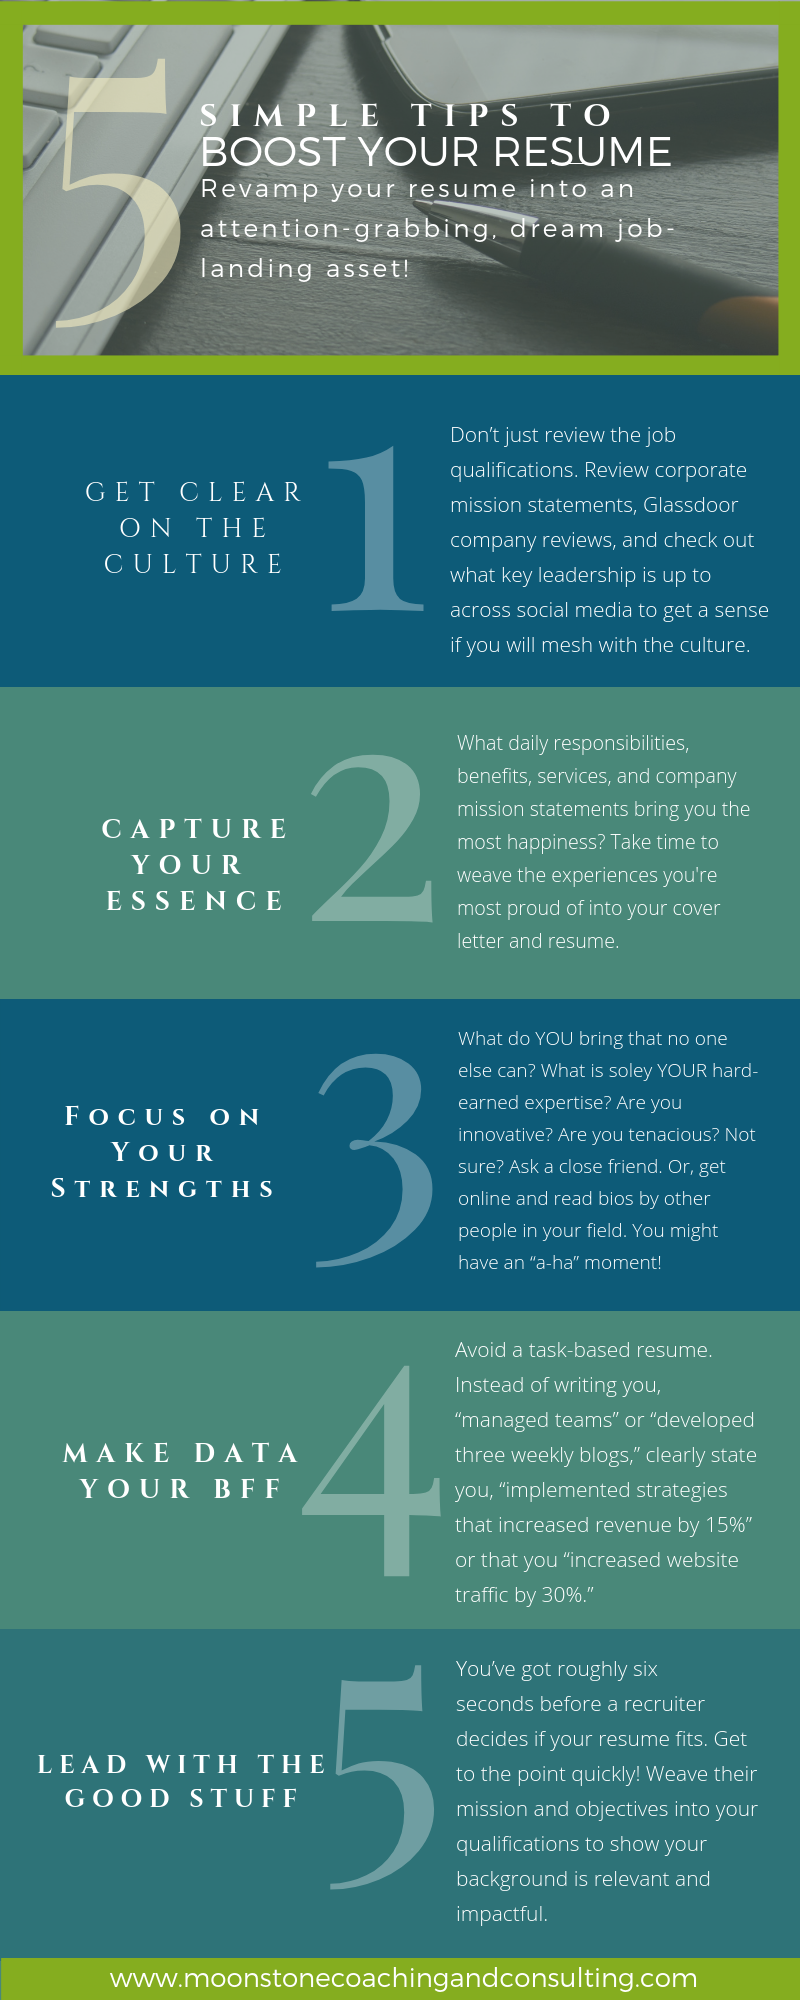 5 simple tips to boost your resume-2.png